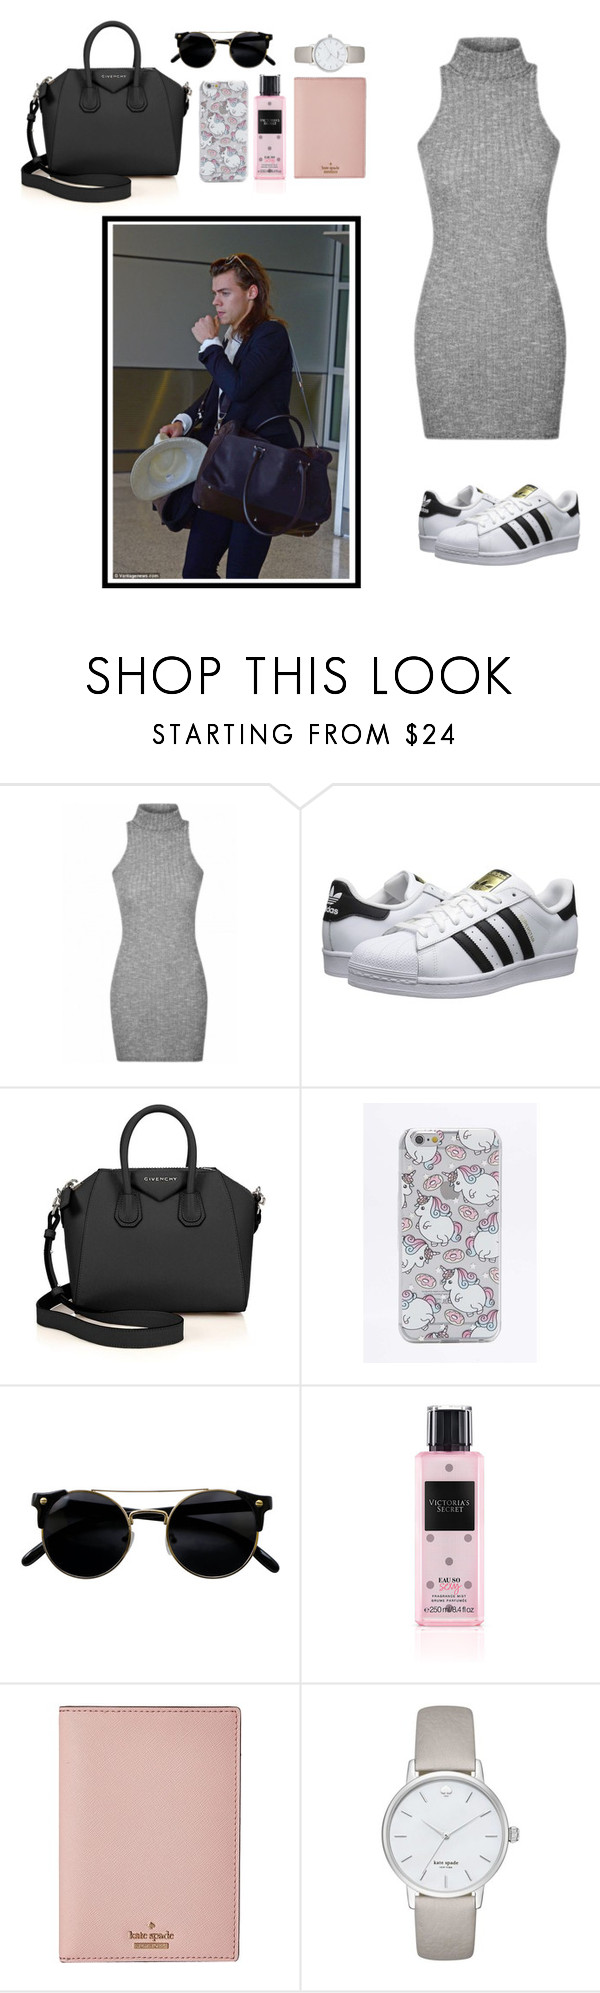 """""""Airport with Harry."""" by peehujain ❤ liked on Polyvore featuring adidas Originals, Givenchy, Skinnydip, Victoria's Secret and Kate Spade"""